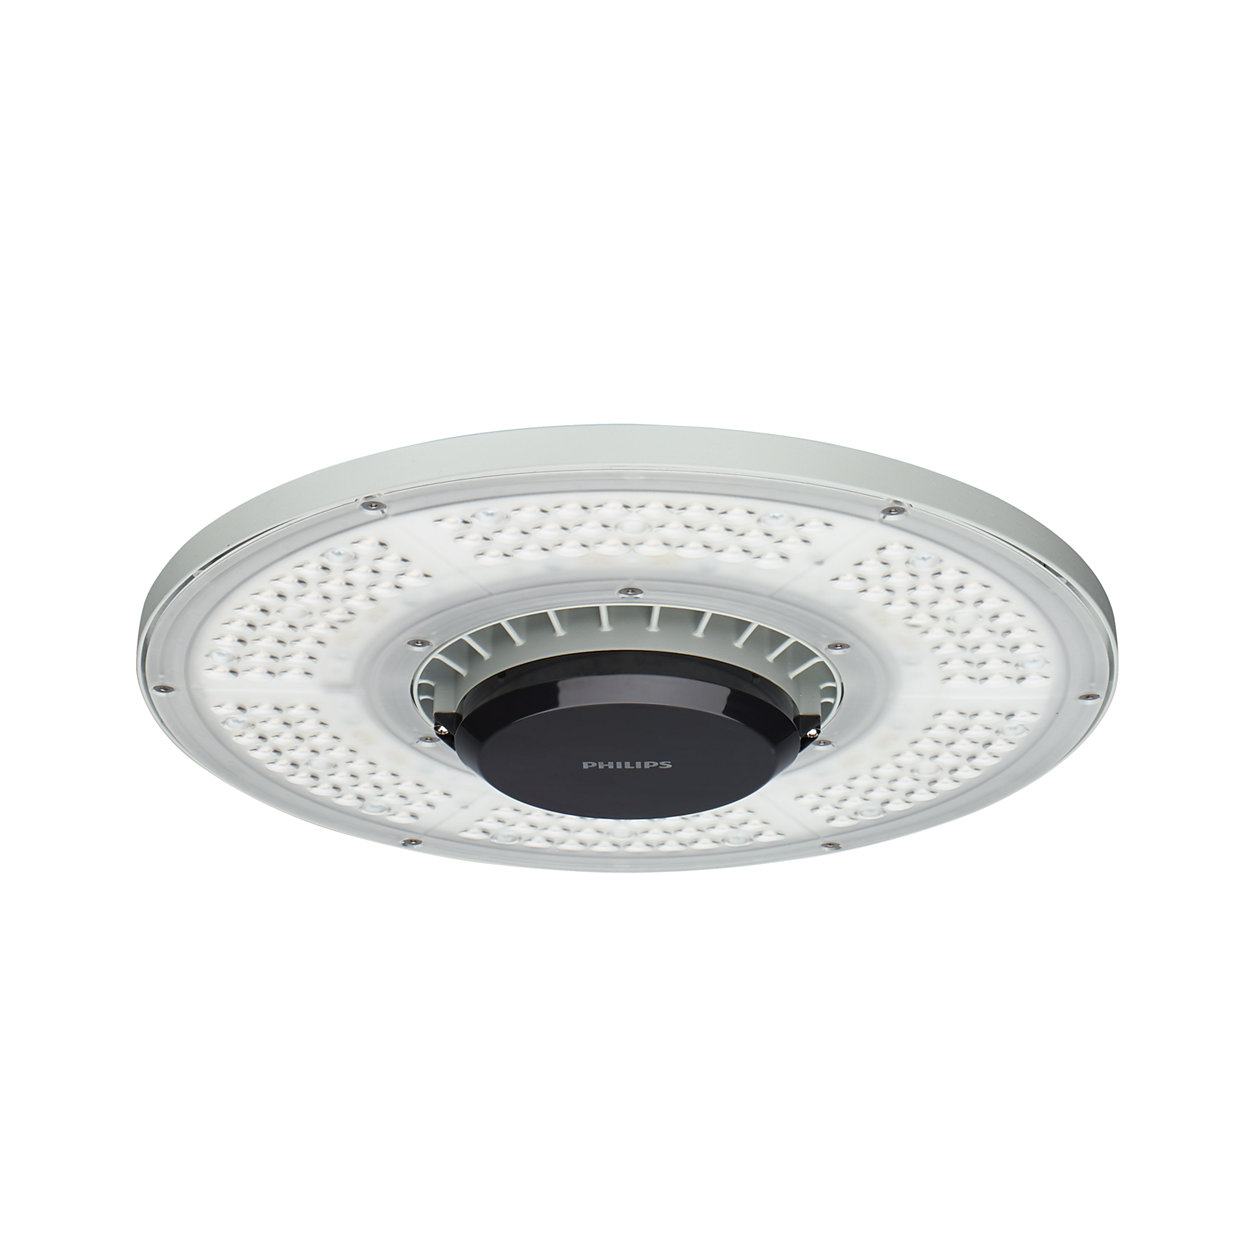 A superior light quality, highly efficient and reliable solution.